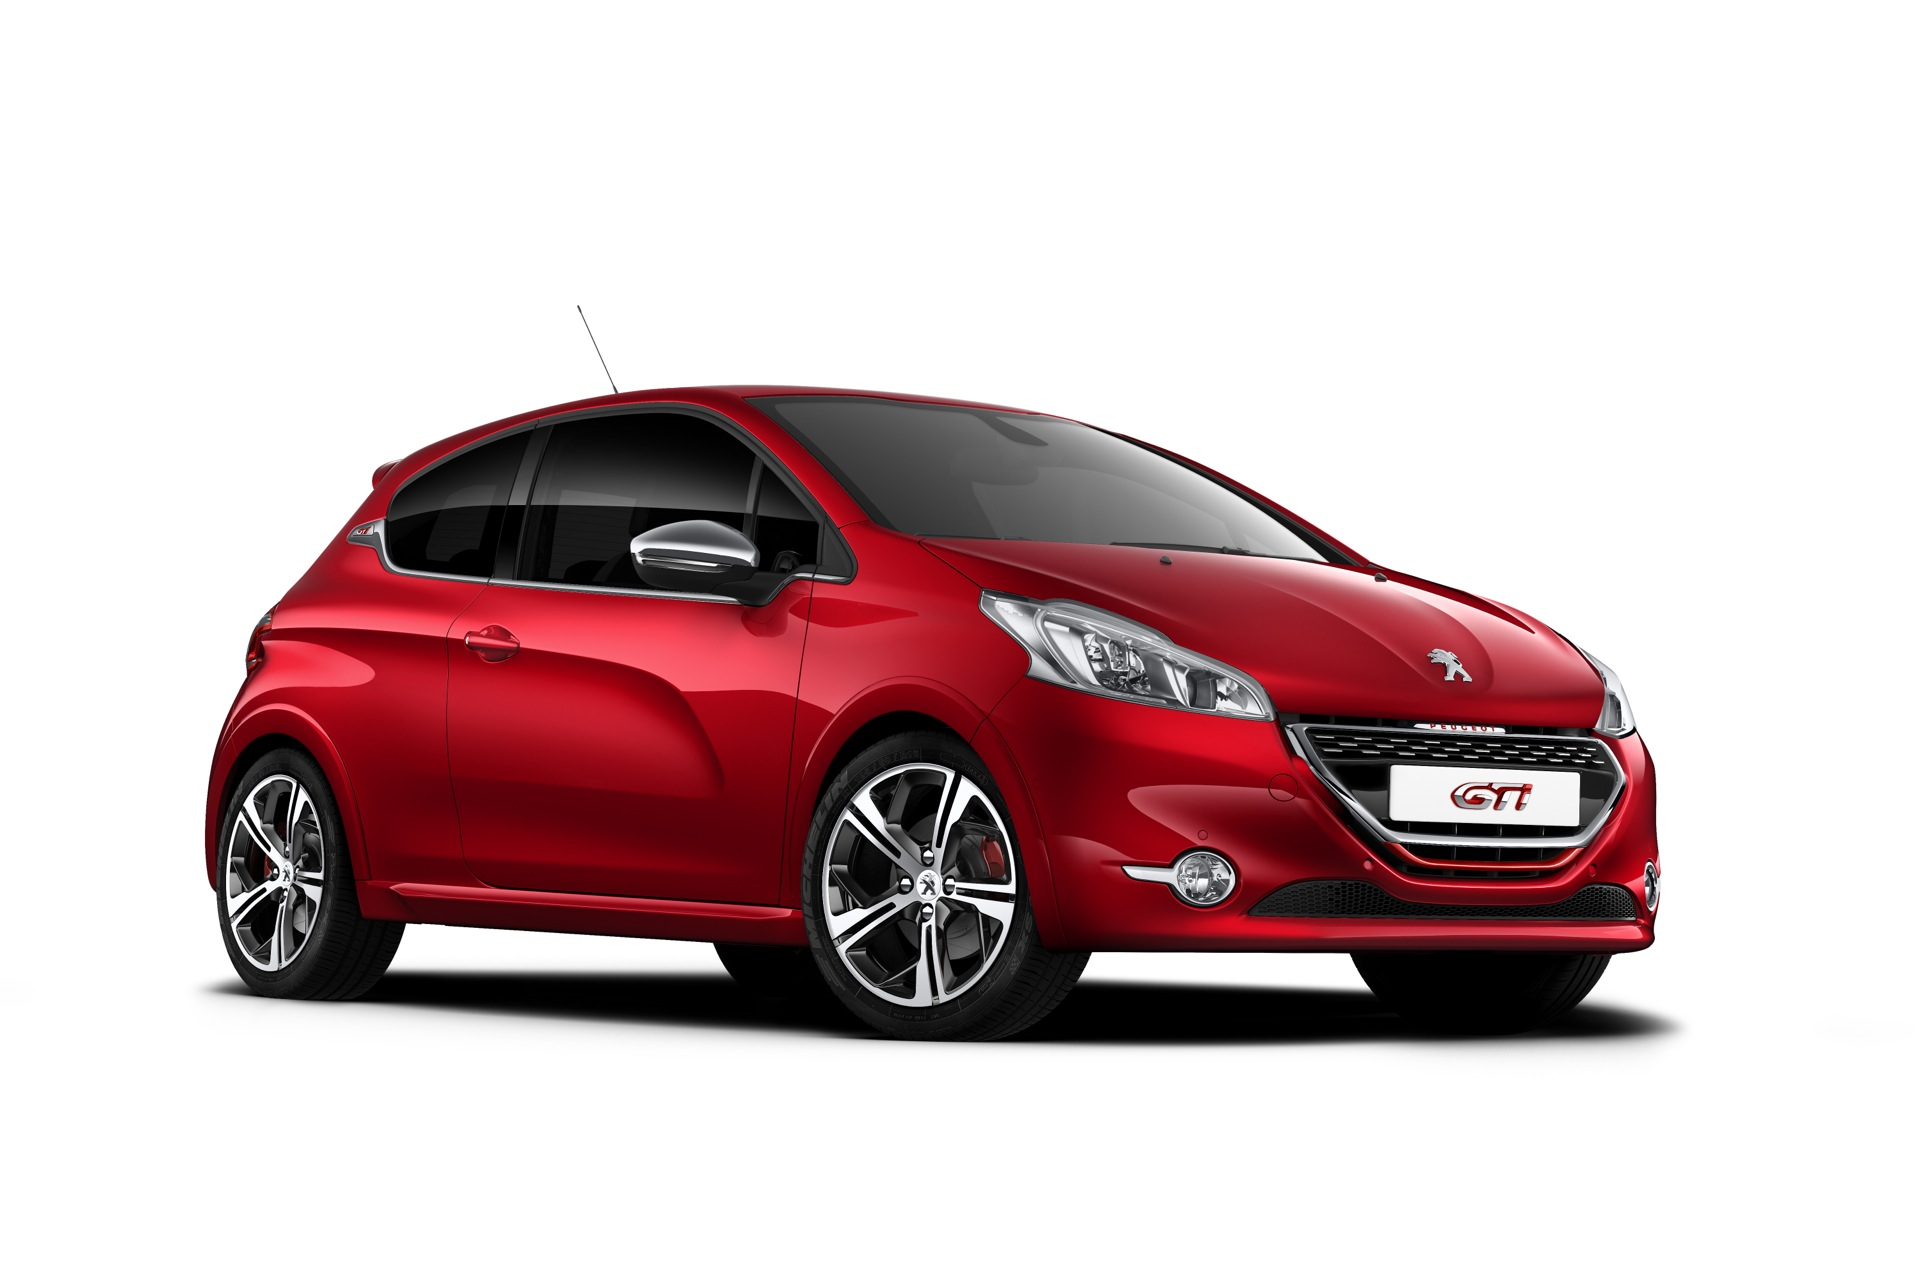 peugeot-recluta-i-piloti-sul-web @ drivelife.it magazine on line